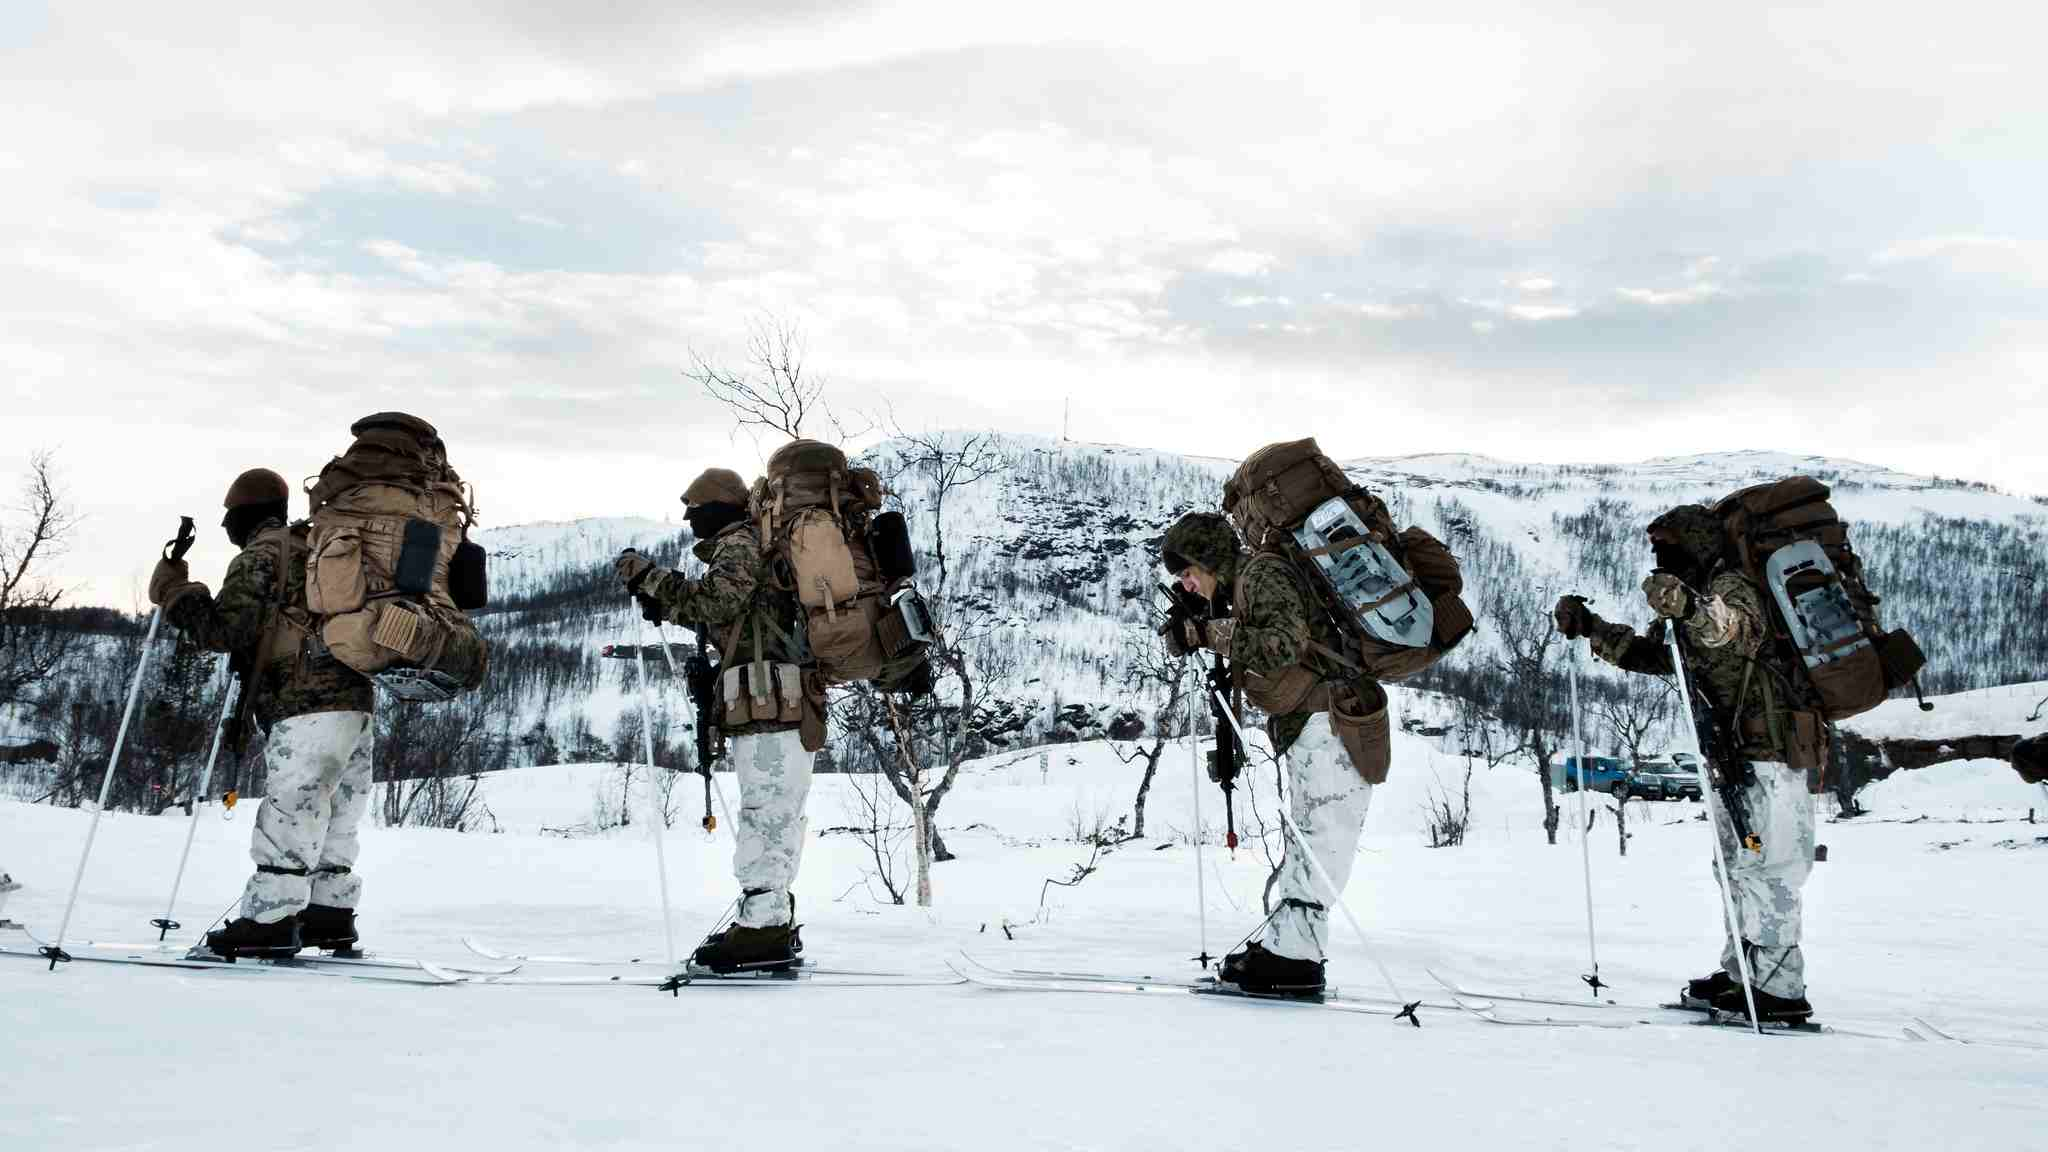 Photo: U.S. Marines traverse arctic terrain on skis near Moen, Norway as part of Exercise White Claymore in February 2018. During the exercise, Marines with Marine Rotational Force-Europe honed their winter warfare skills with UKRoyal Marines with 45 Commando.